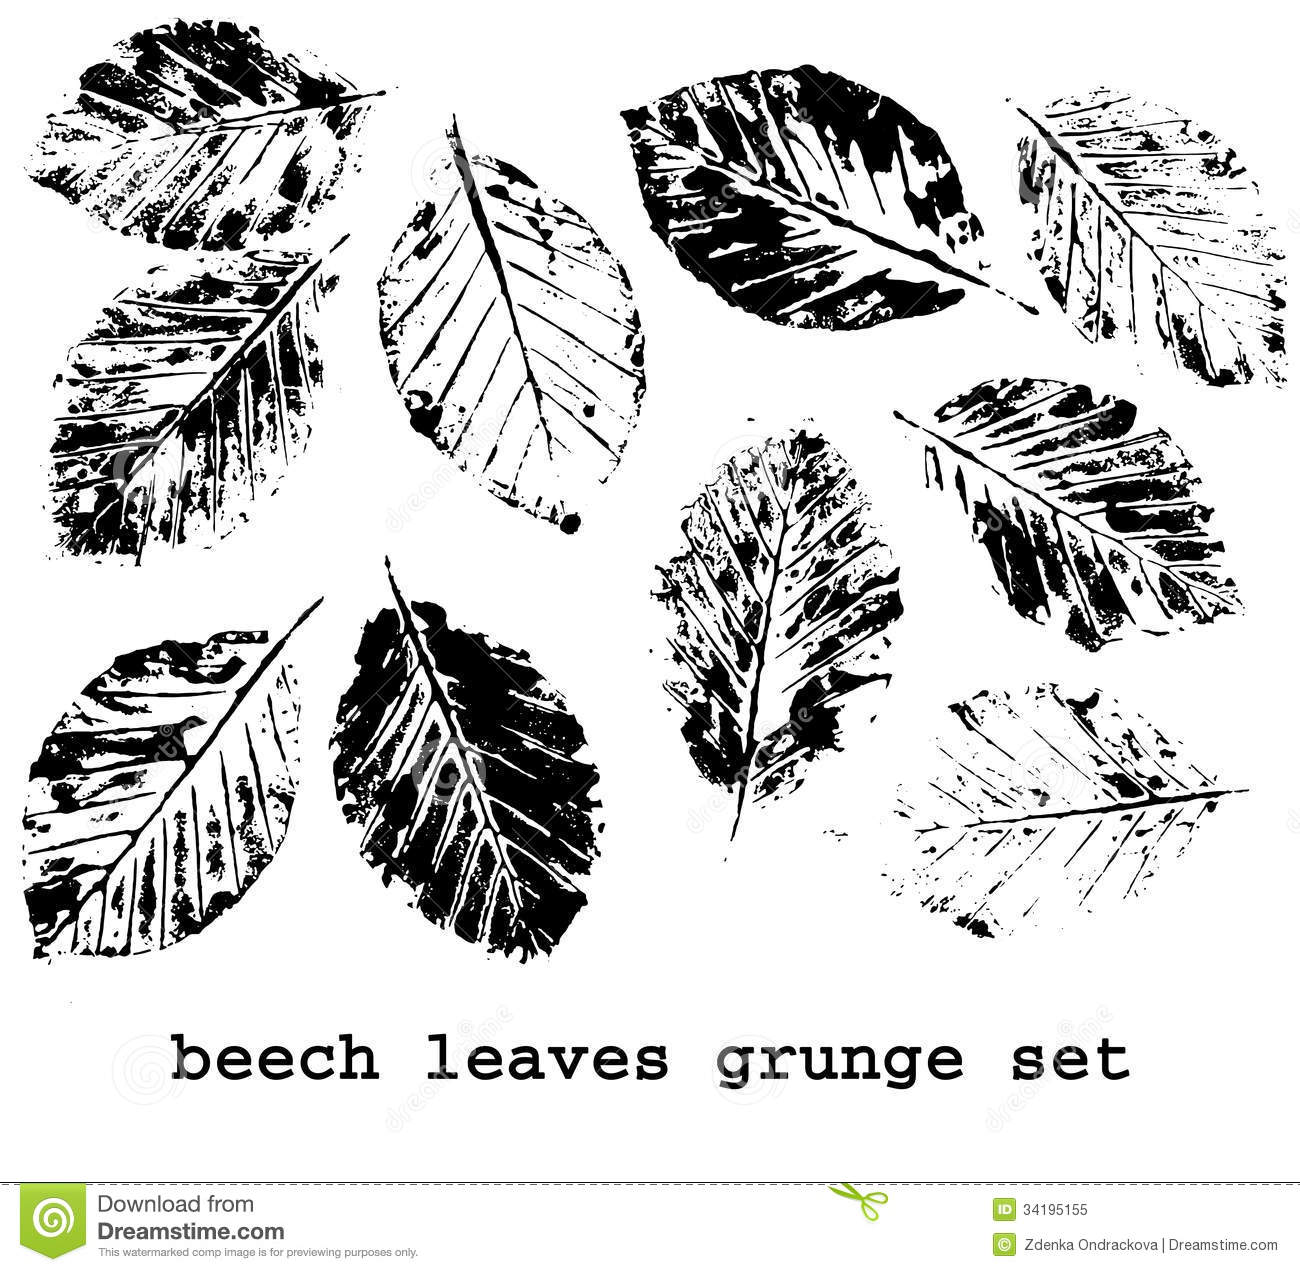 Dbb72bb2a7ec3c0bc125731e00393a9c as well Imagens De Stock Cowgirl Image18114604 moreover Royalty Free Stock Photo Beech Leaf Prints Set Grunge Leaves Silhouette Brushes Isolated Black White Background Image34195155 as well Bioorganic Skull Tattoo 1 209449021 furthermore Always On Top Numerator. on 2 1256 0